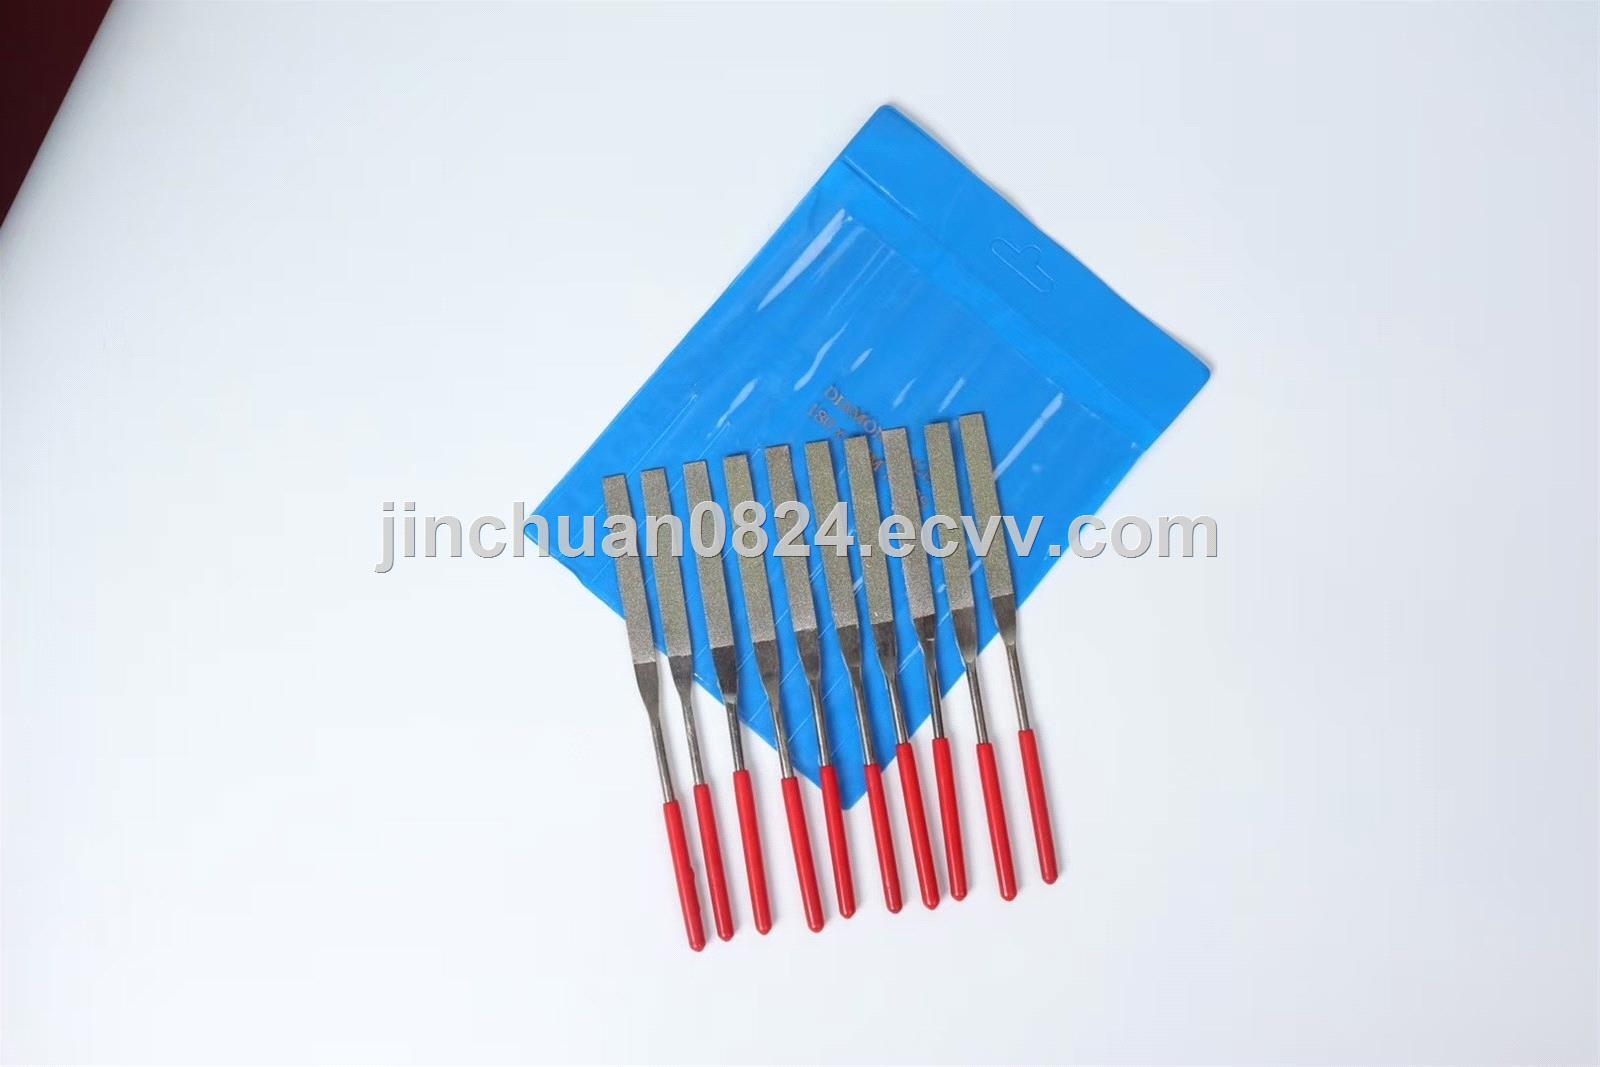 Diamond File for Grinding Ceramic Metal Wood